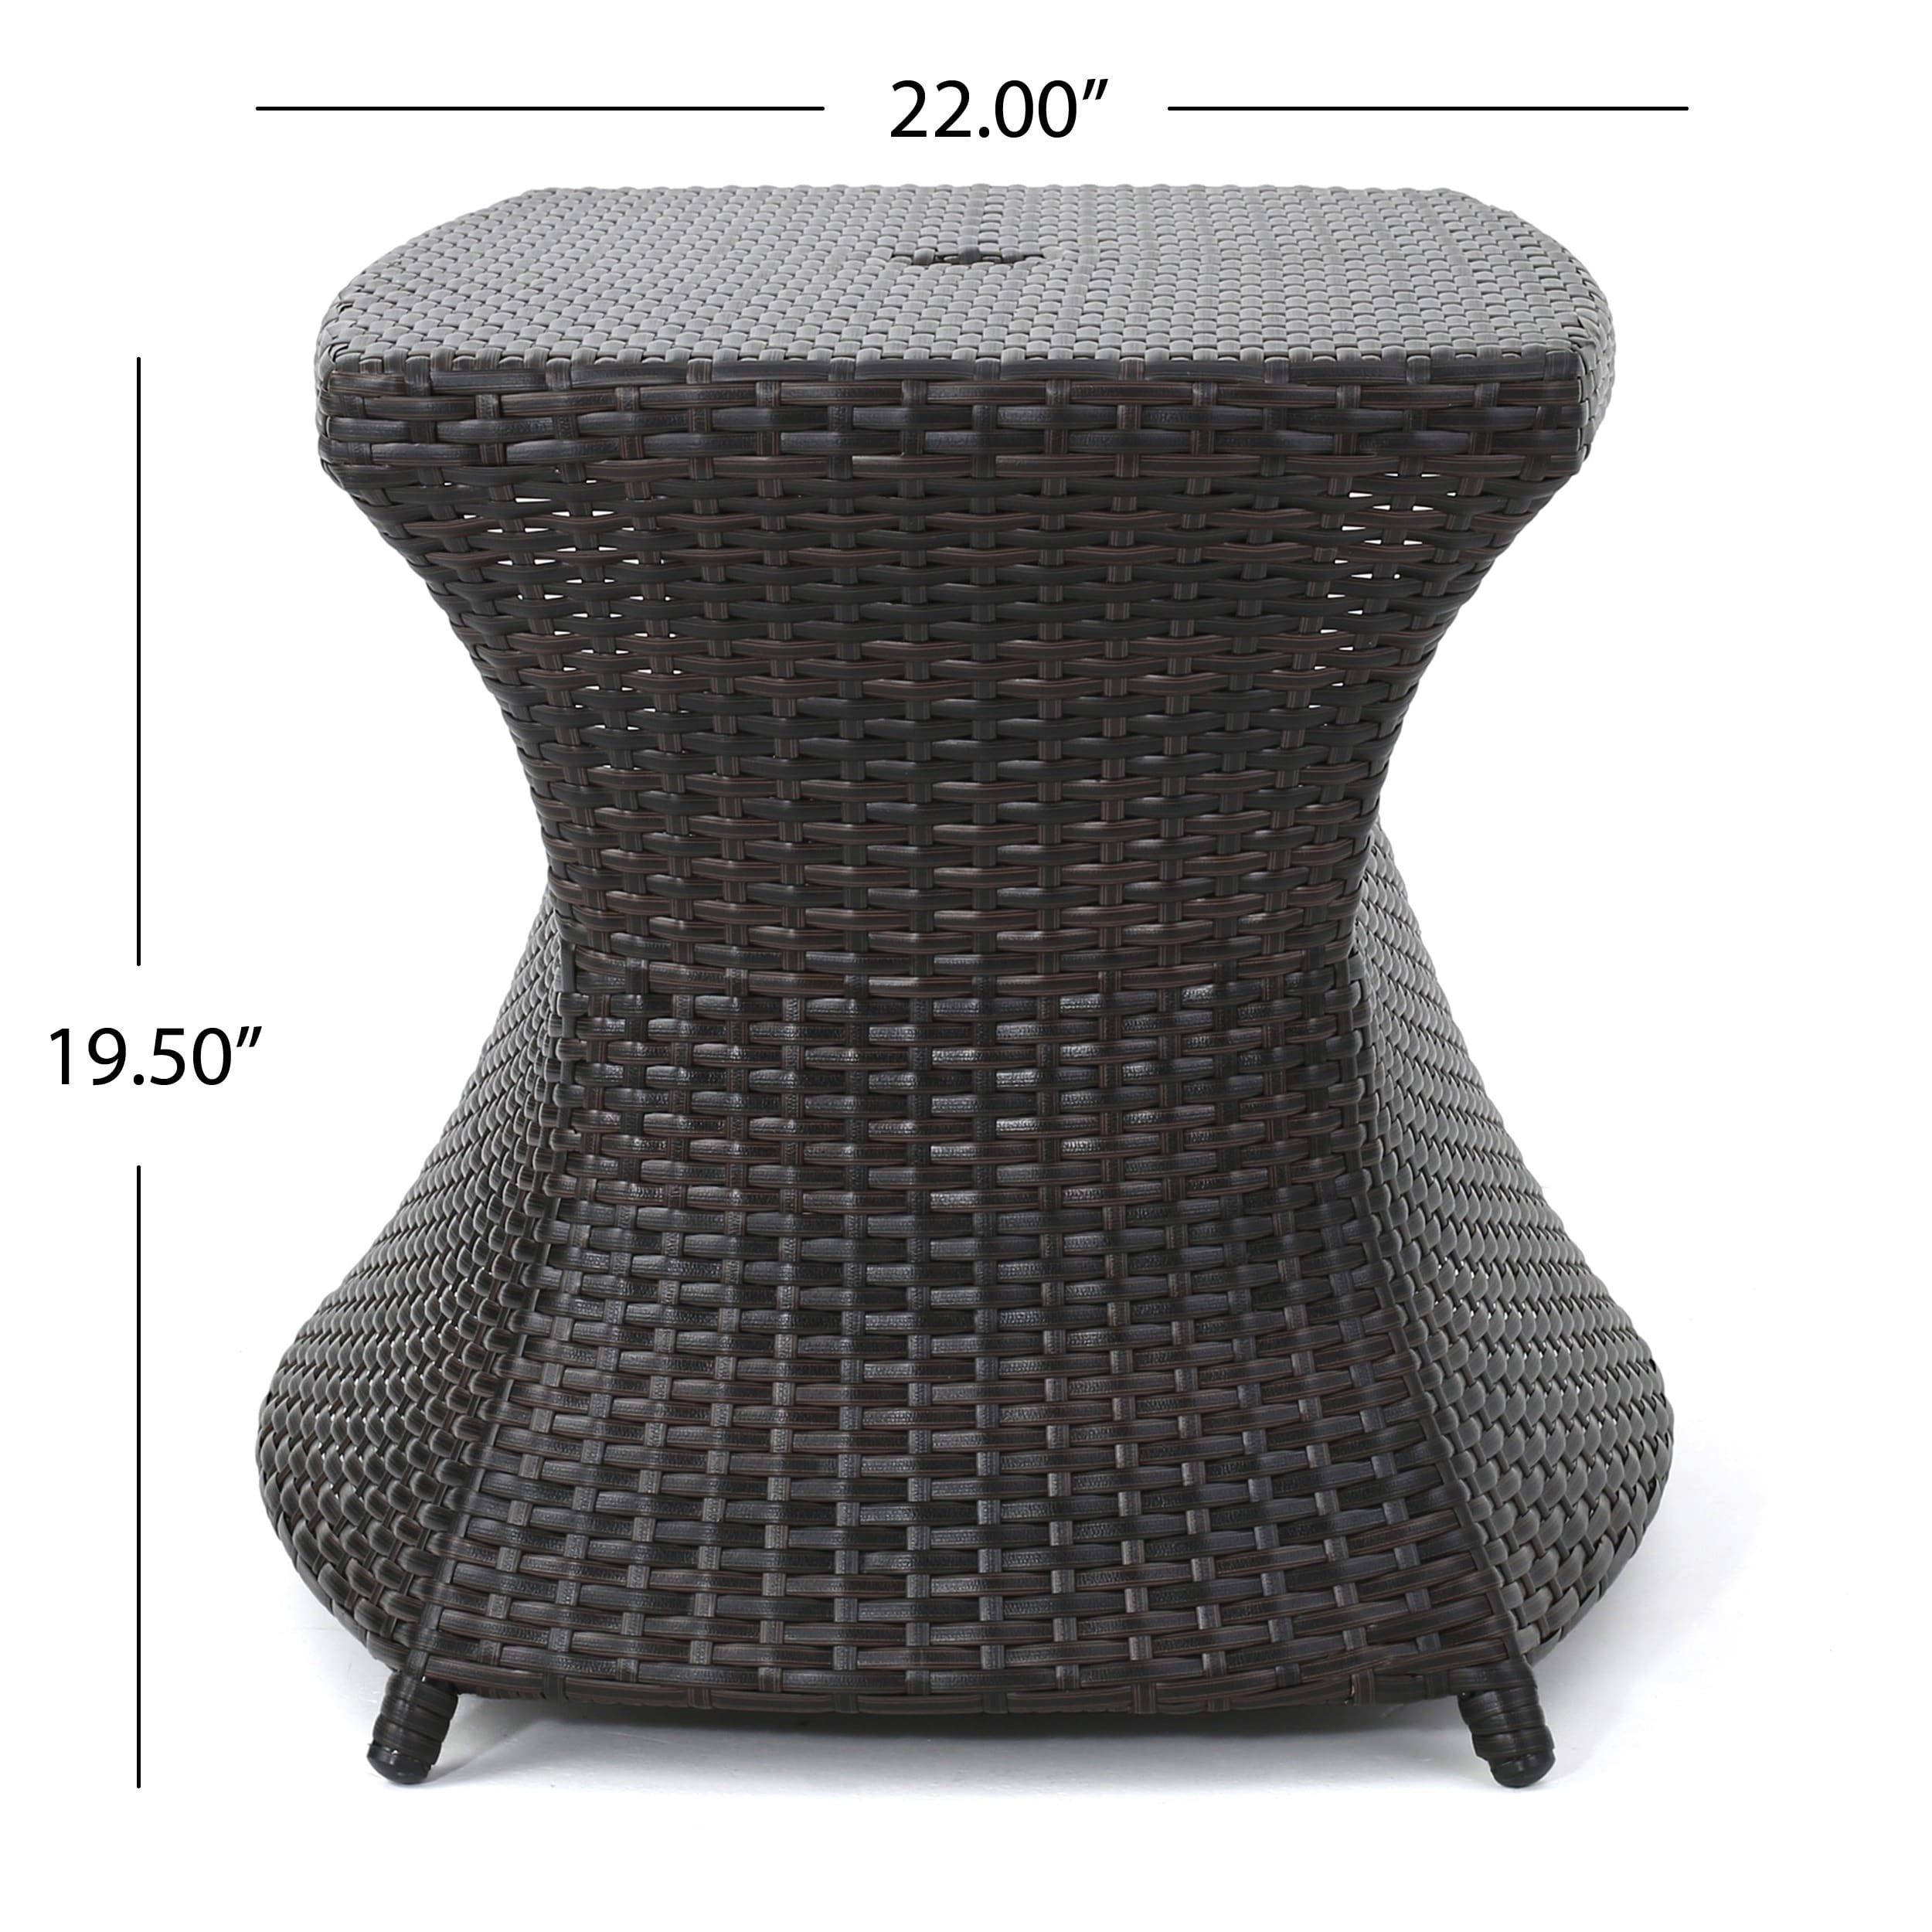 berkeley outdoor wicker side table with umbrella hole christopher knight home free shipping today built tables cast aluminium garden furniture kids corner curio cabinet espresso